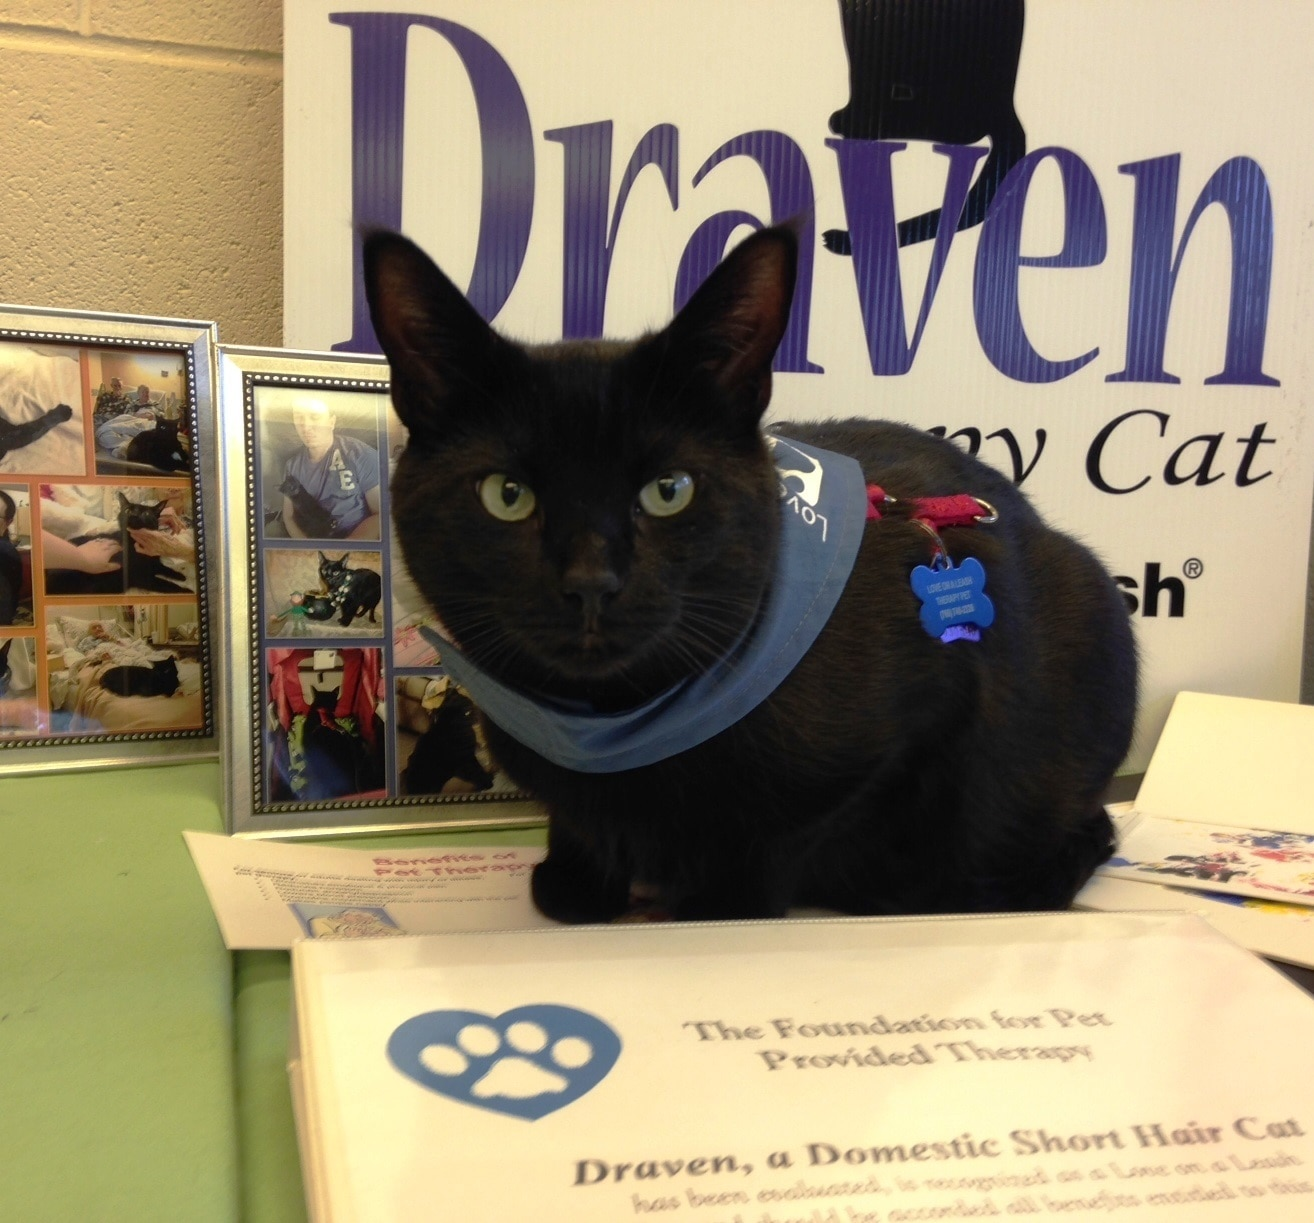 Draven the pet therapy cat sits in front of booth.